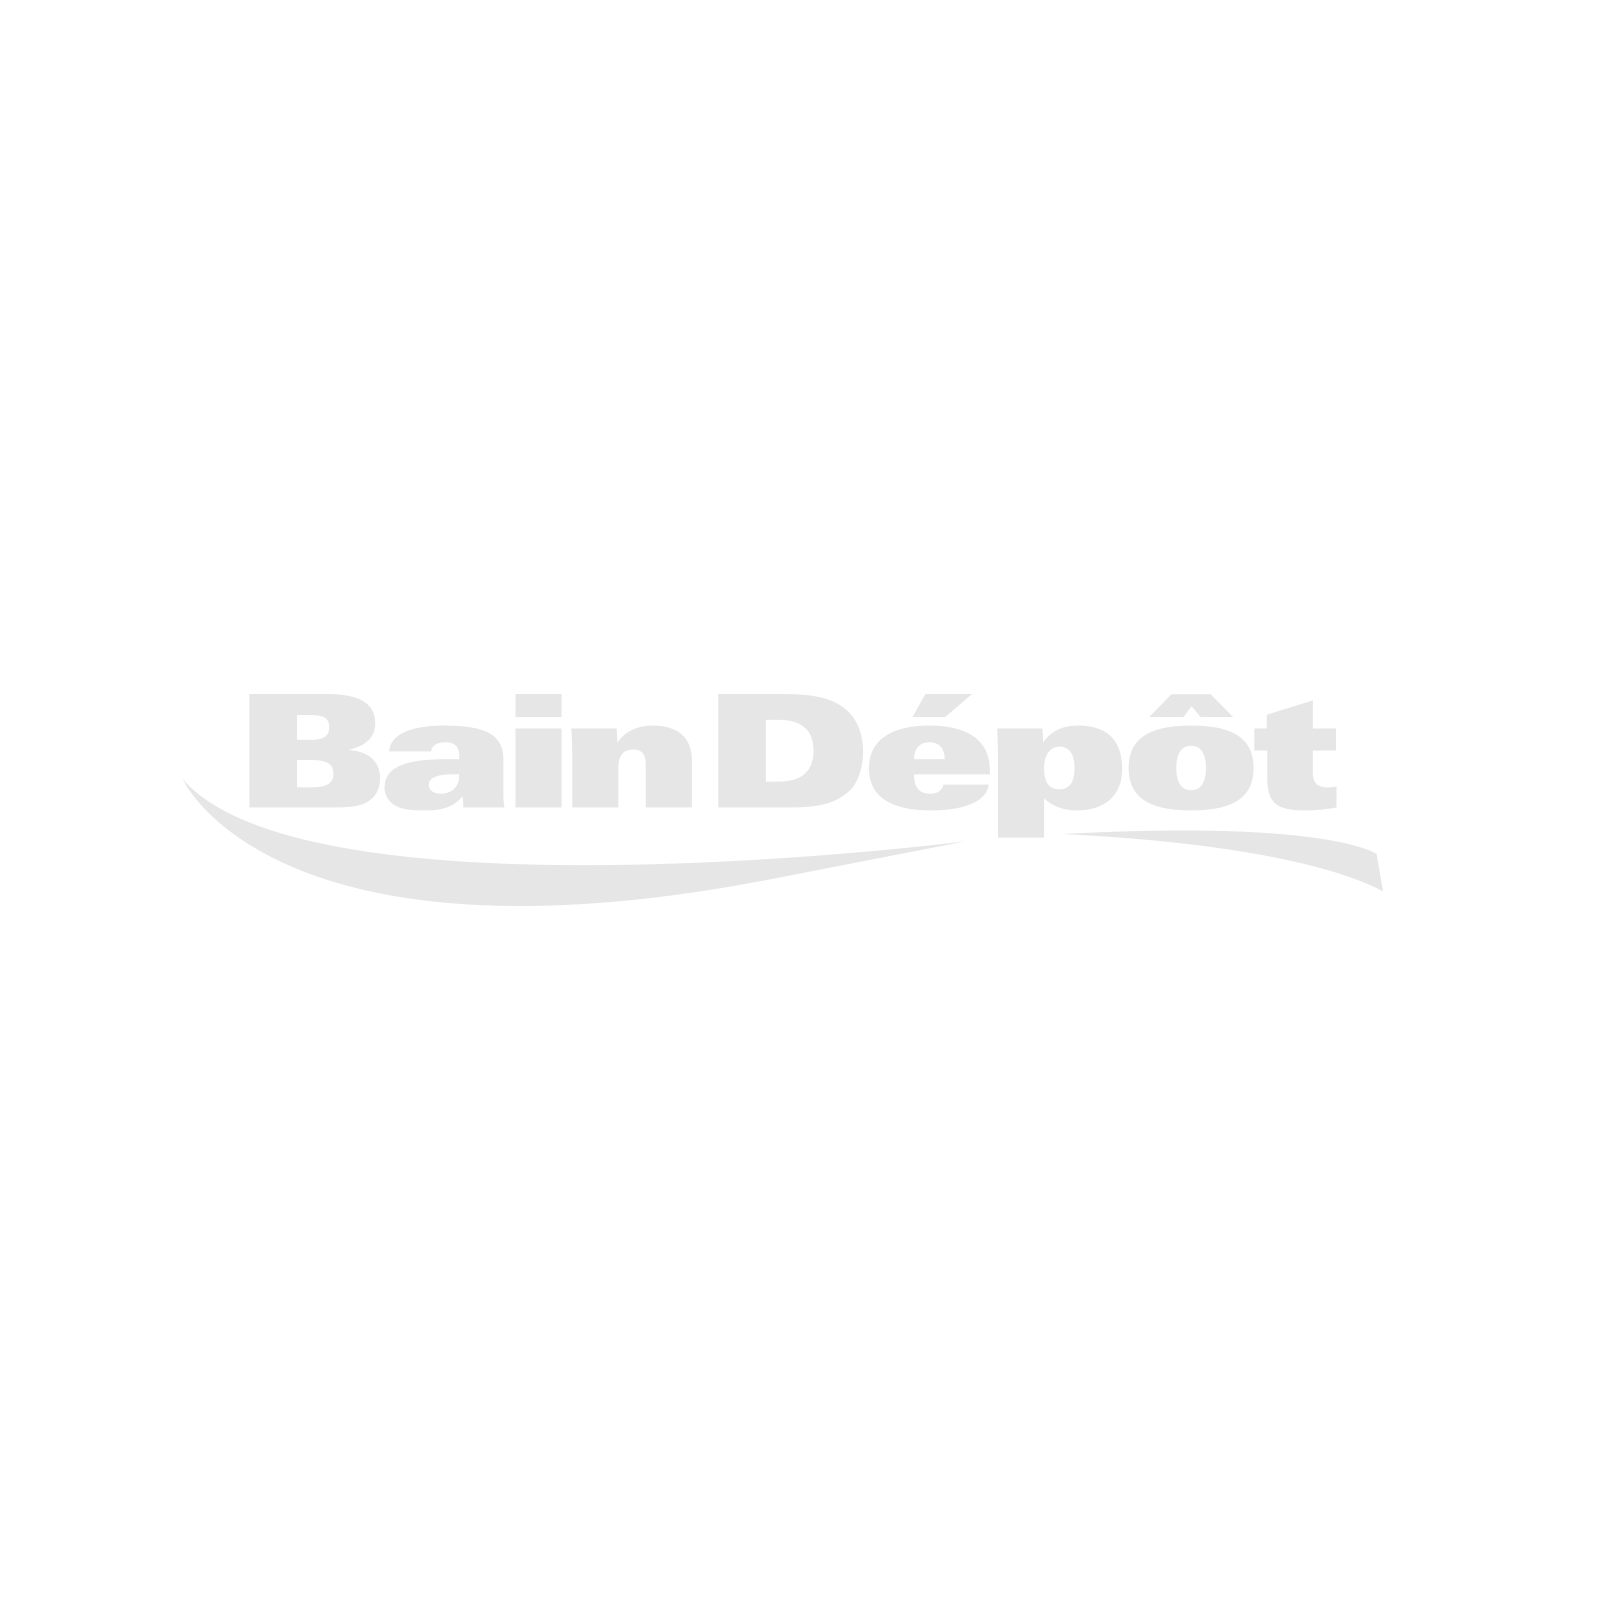 Mirror finish radiant heater with 2 towel bars - IMPRESARIO 1200 C12